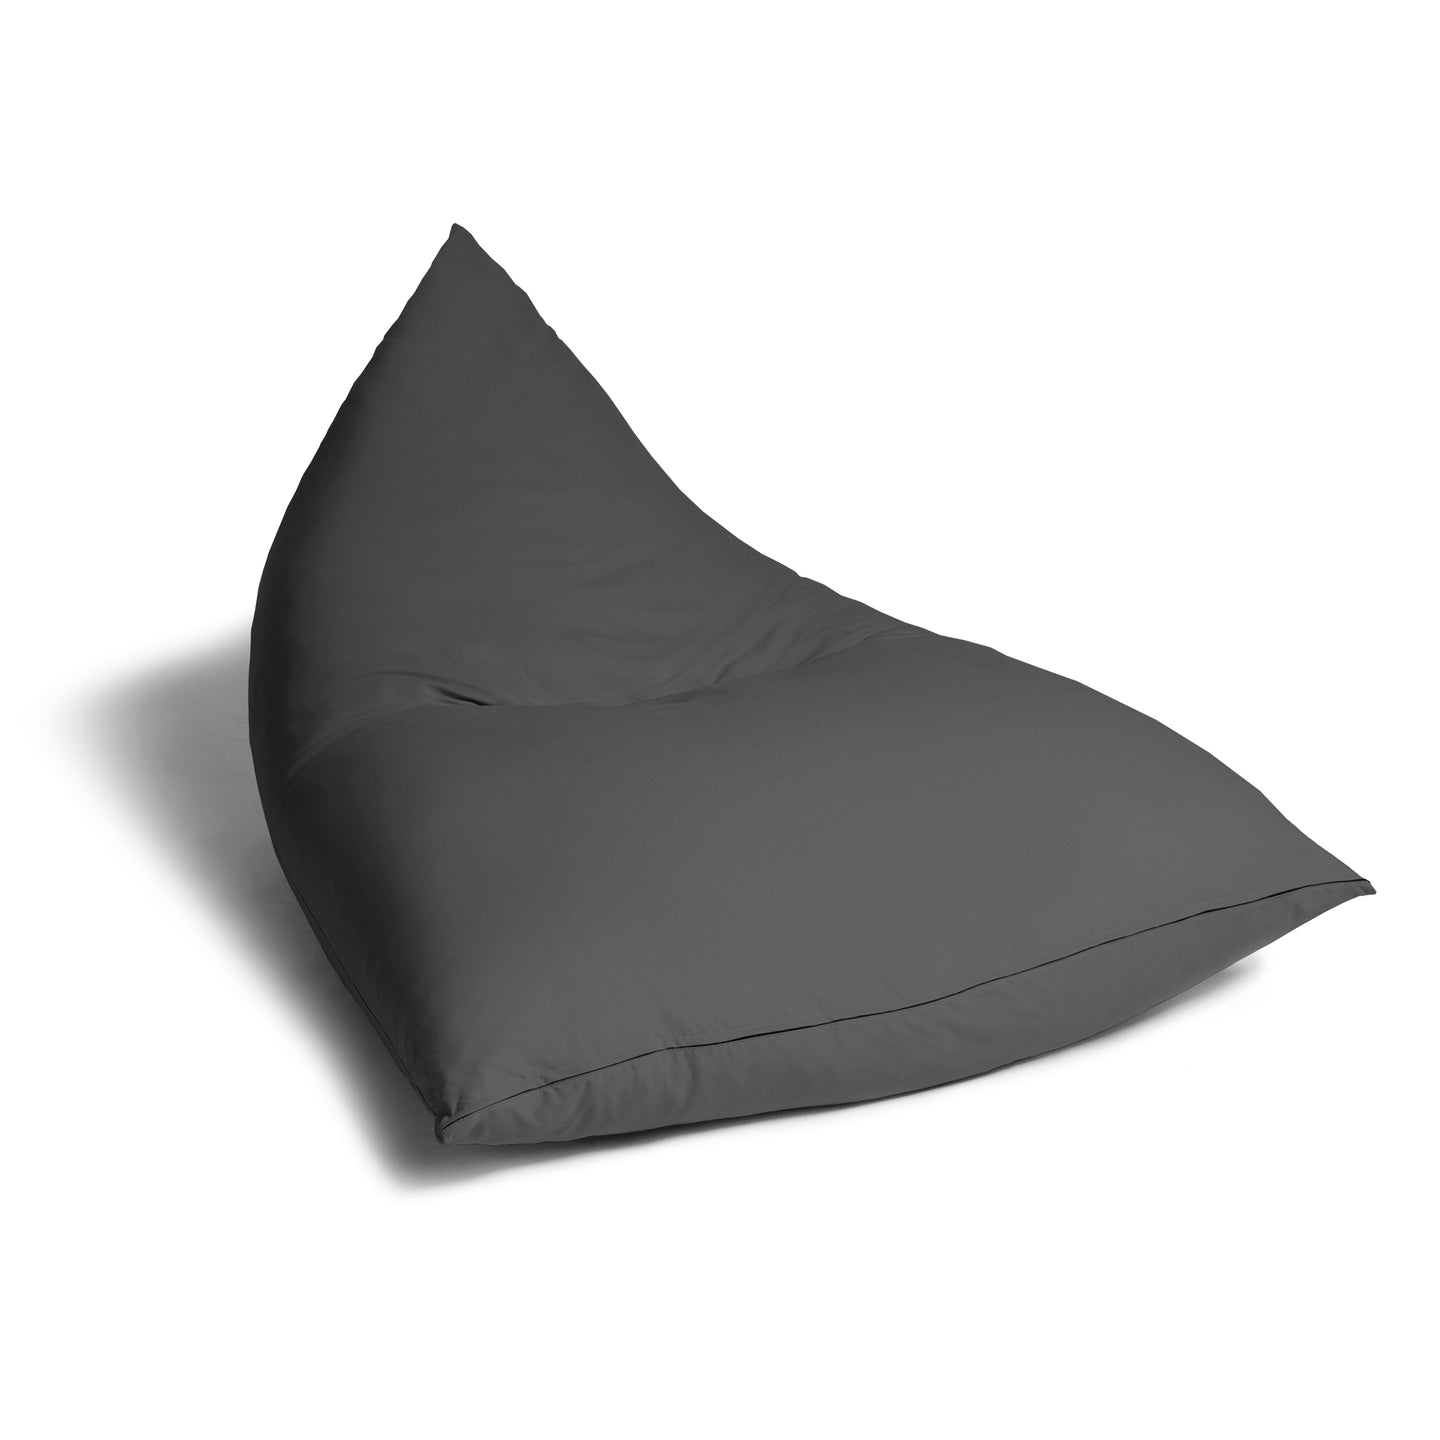 Jaxx Pivot Bean Bag Chair with Cotton Cover - Little Tactile